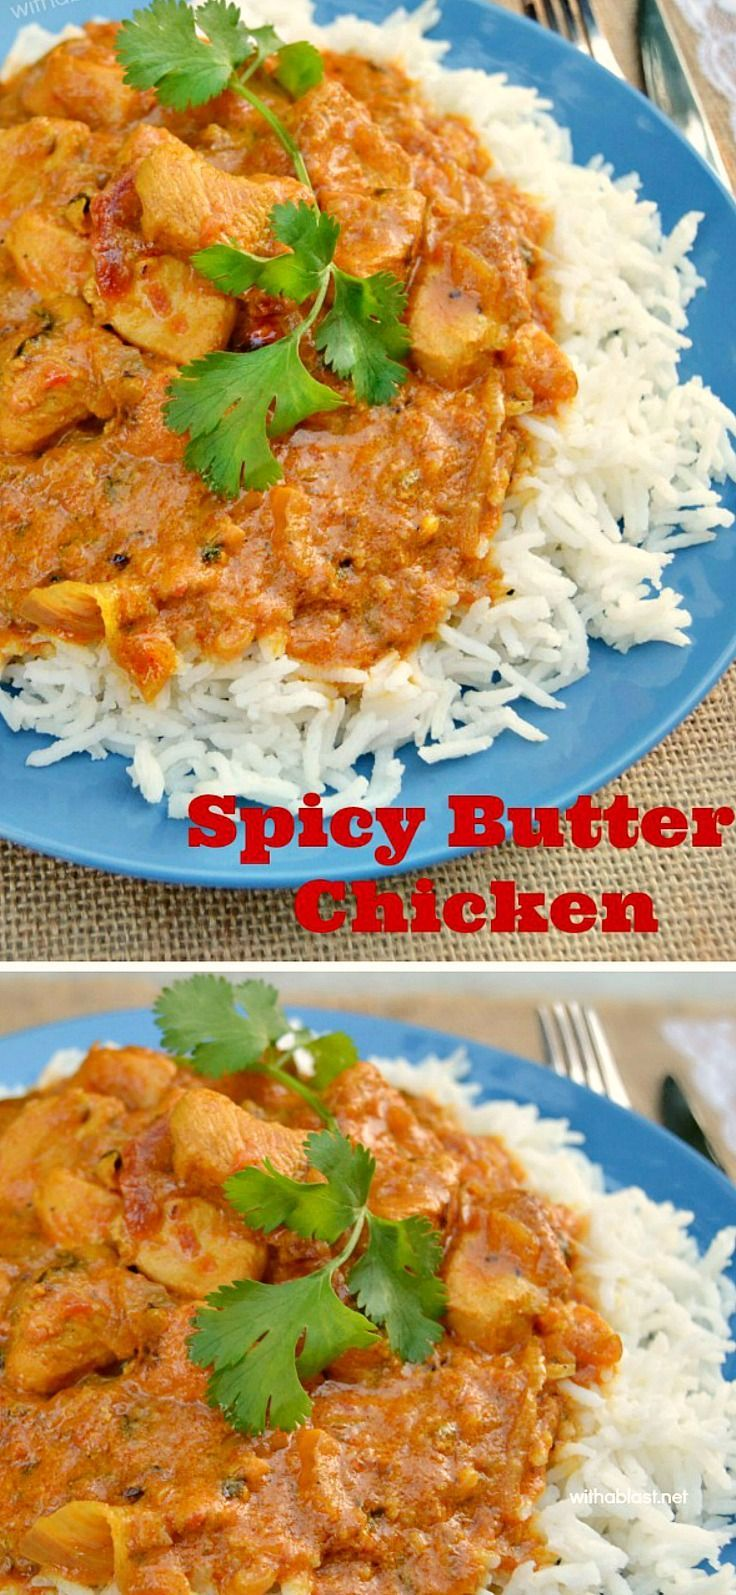 The best spicy butter chicken recipe quick and easy comfort food the best spicy butter chicken recipe quick and easy comfort food butterchicken easychickenrecipes forumfinder Choice Image